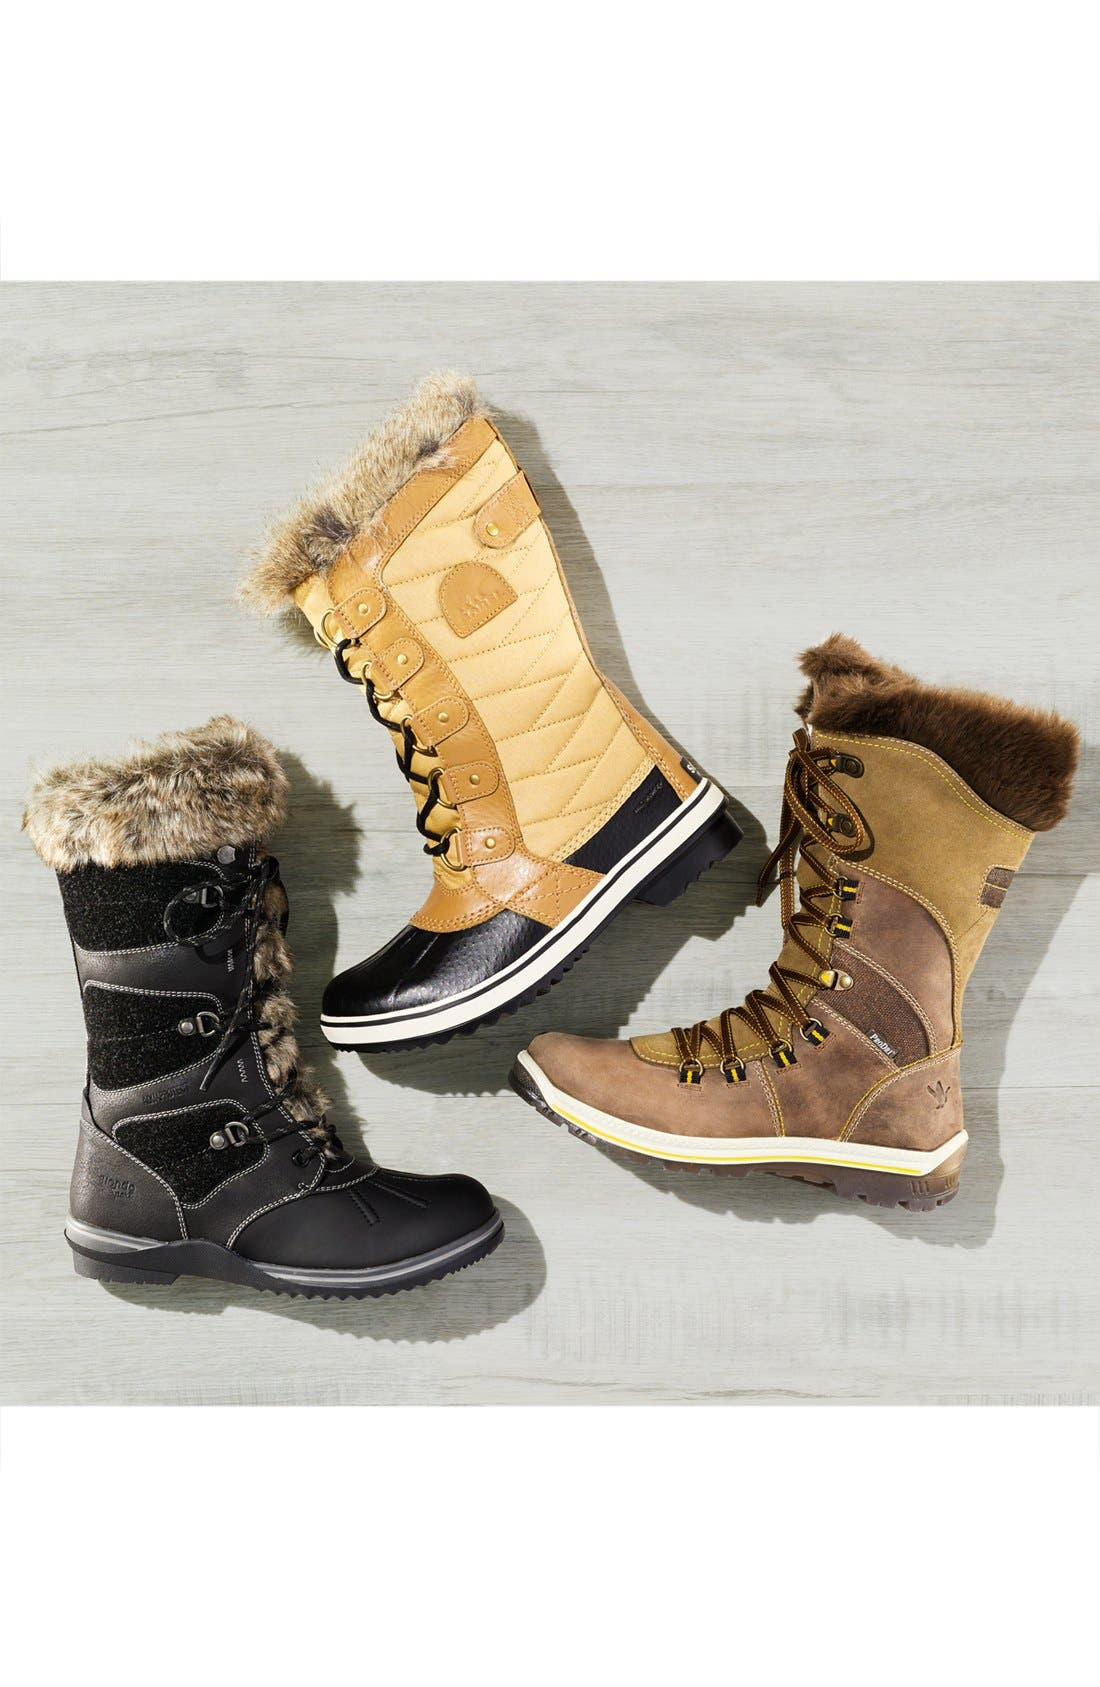 Alternate Image 2  - SOREL 'Tofino II' Faux Fur Lined Waterproof Boot (Women)